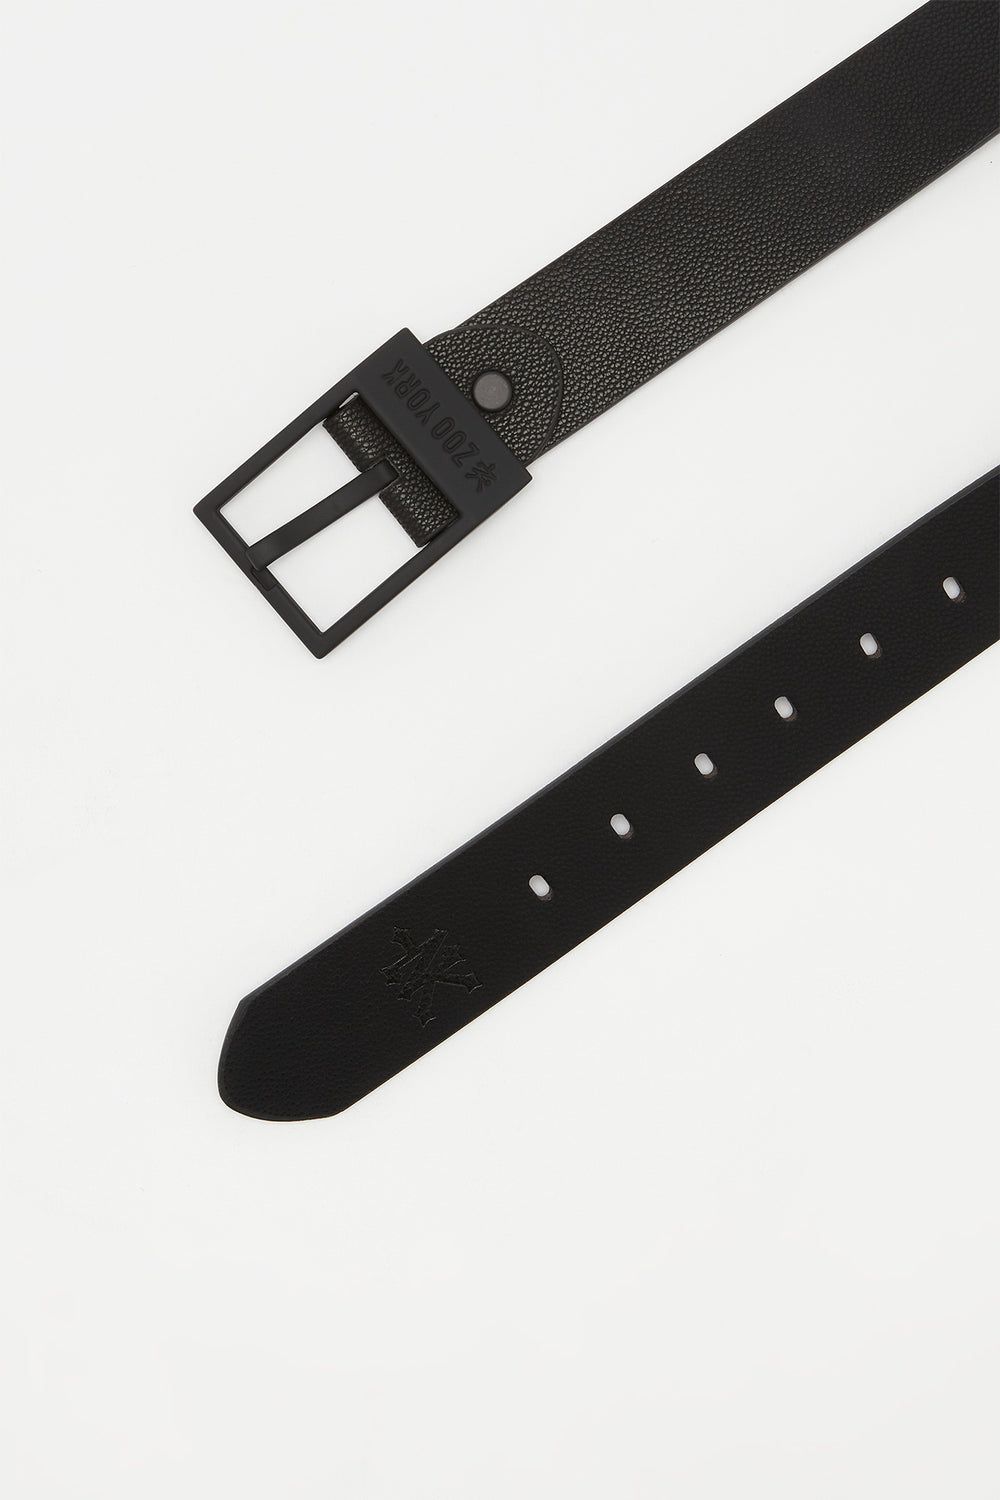 Zoo York Boys Black Faux Leather Belt Black